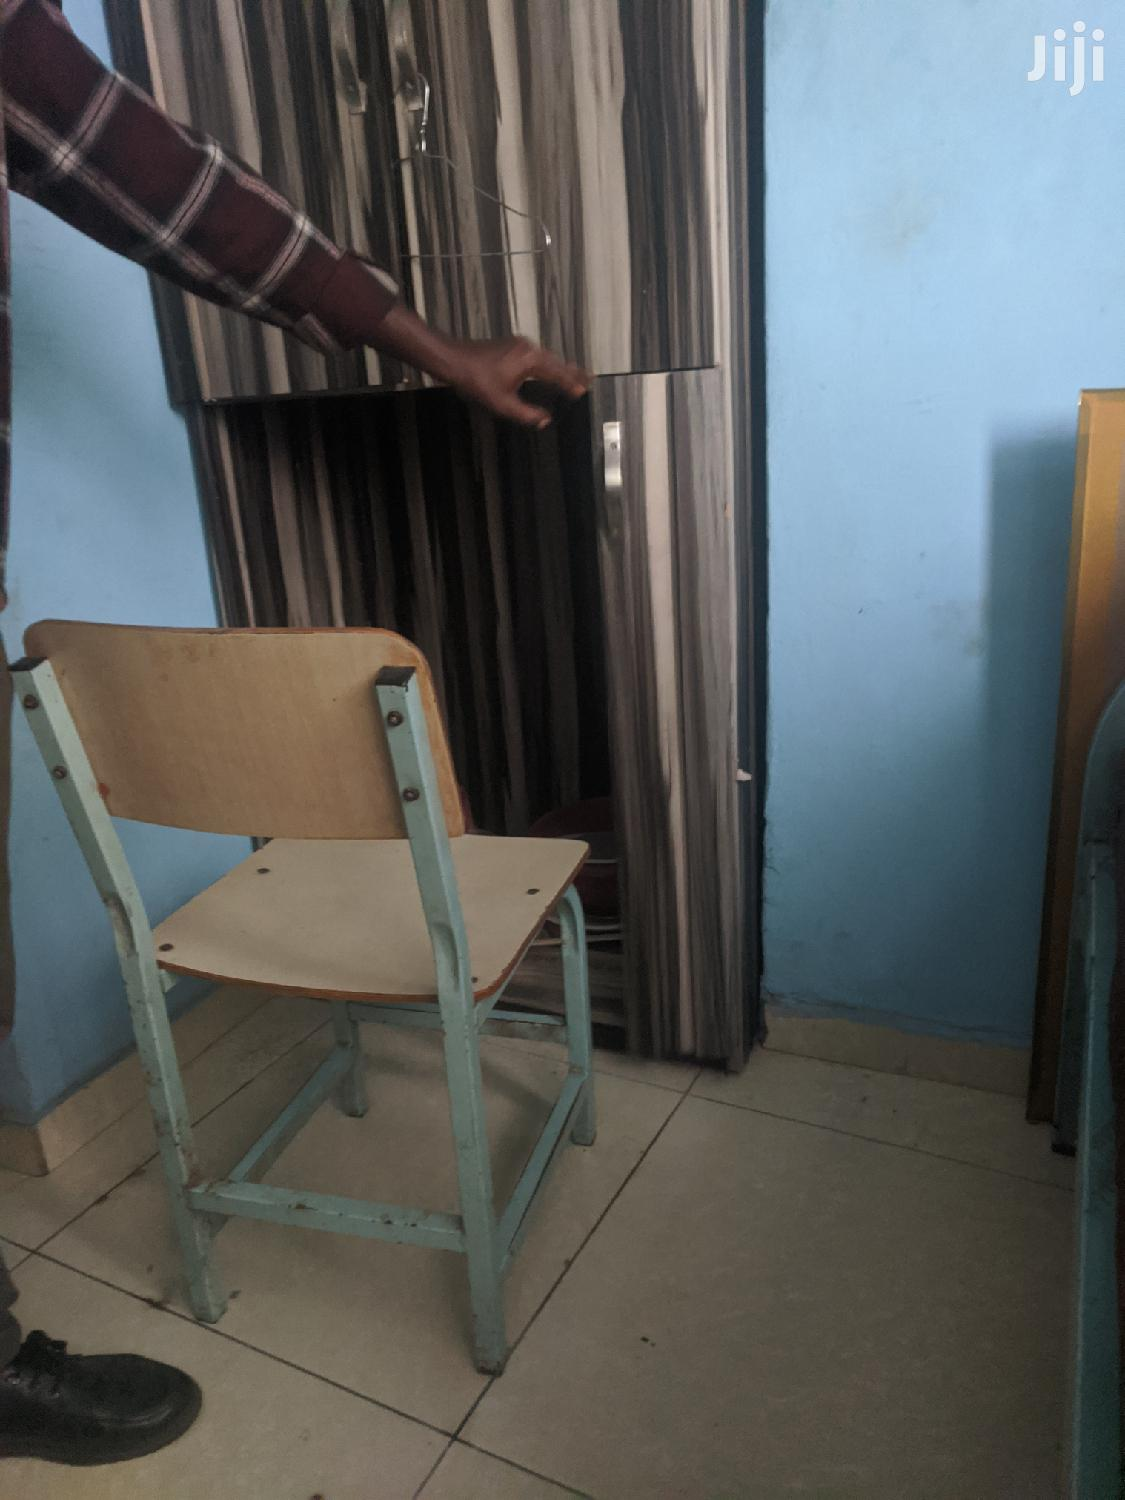 Hostel for Rent | Houses & Apartments For Rent for sale in Tema Metropolitan, Greater Accra, Ghana